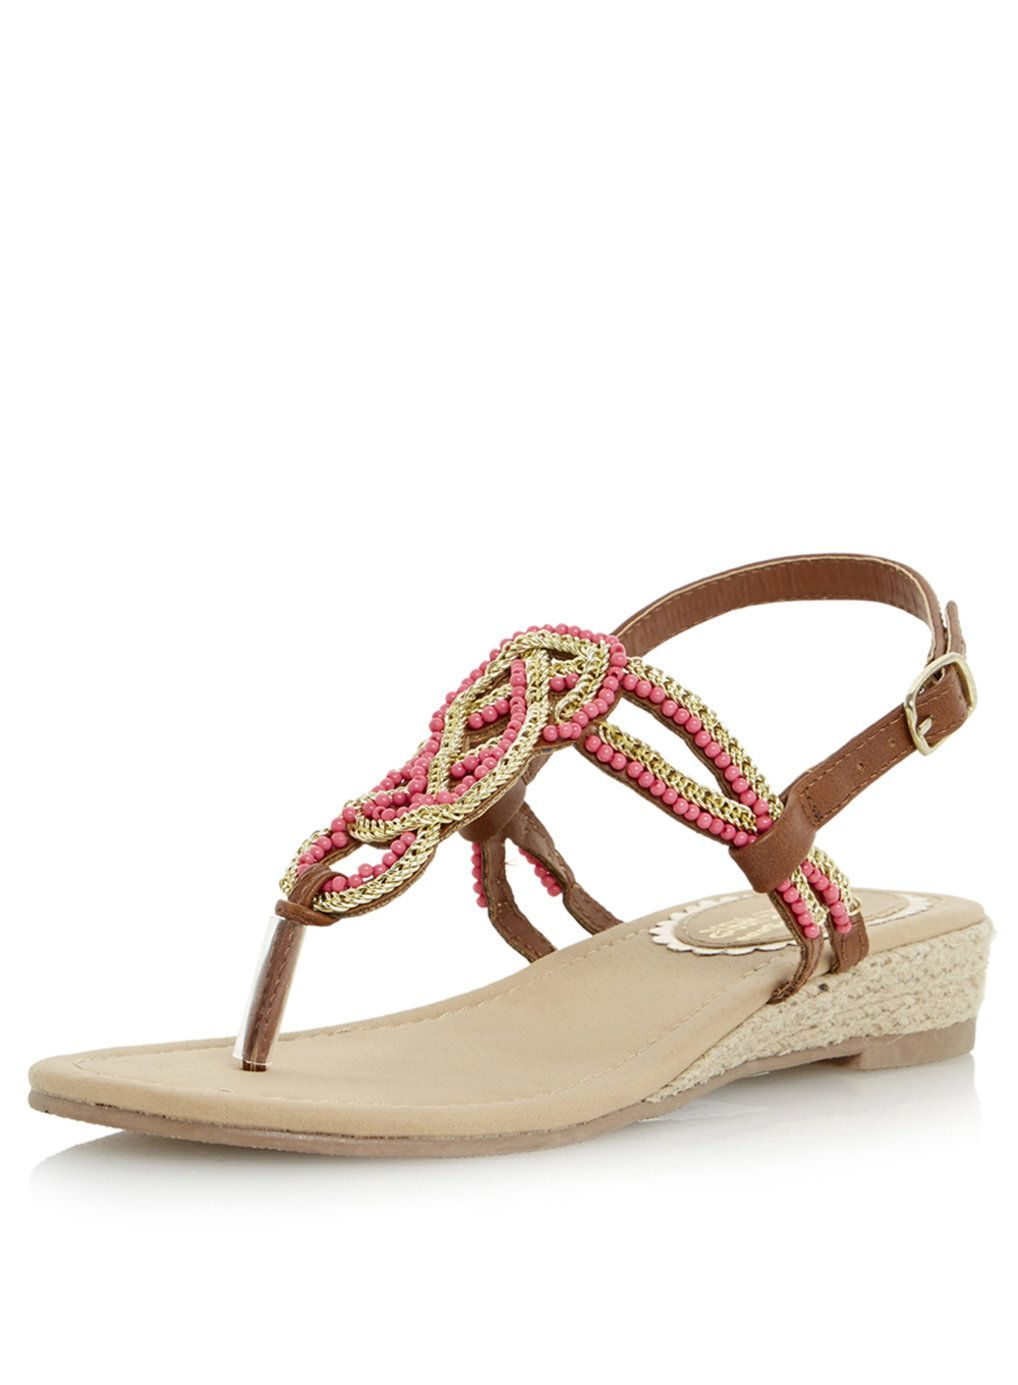 4f33e5312b25f5 Head Over Heels By Dune Niko Embellished Bead Sandal - Sandals - Shoes -  Dorothy Perkins